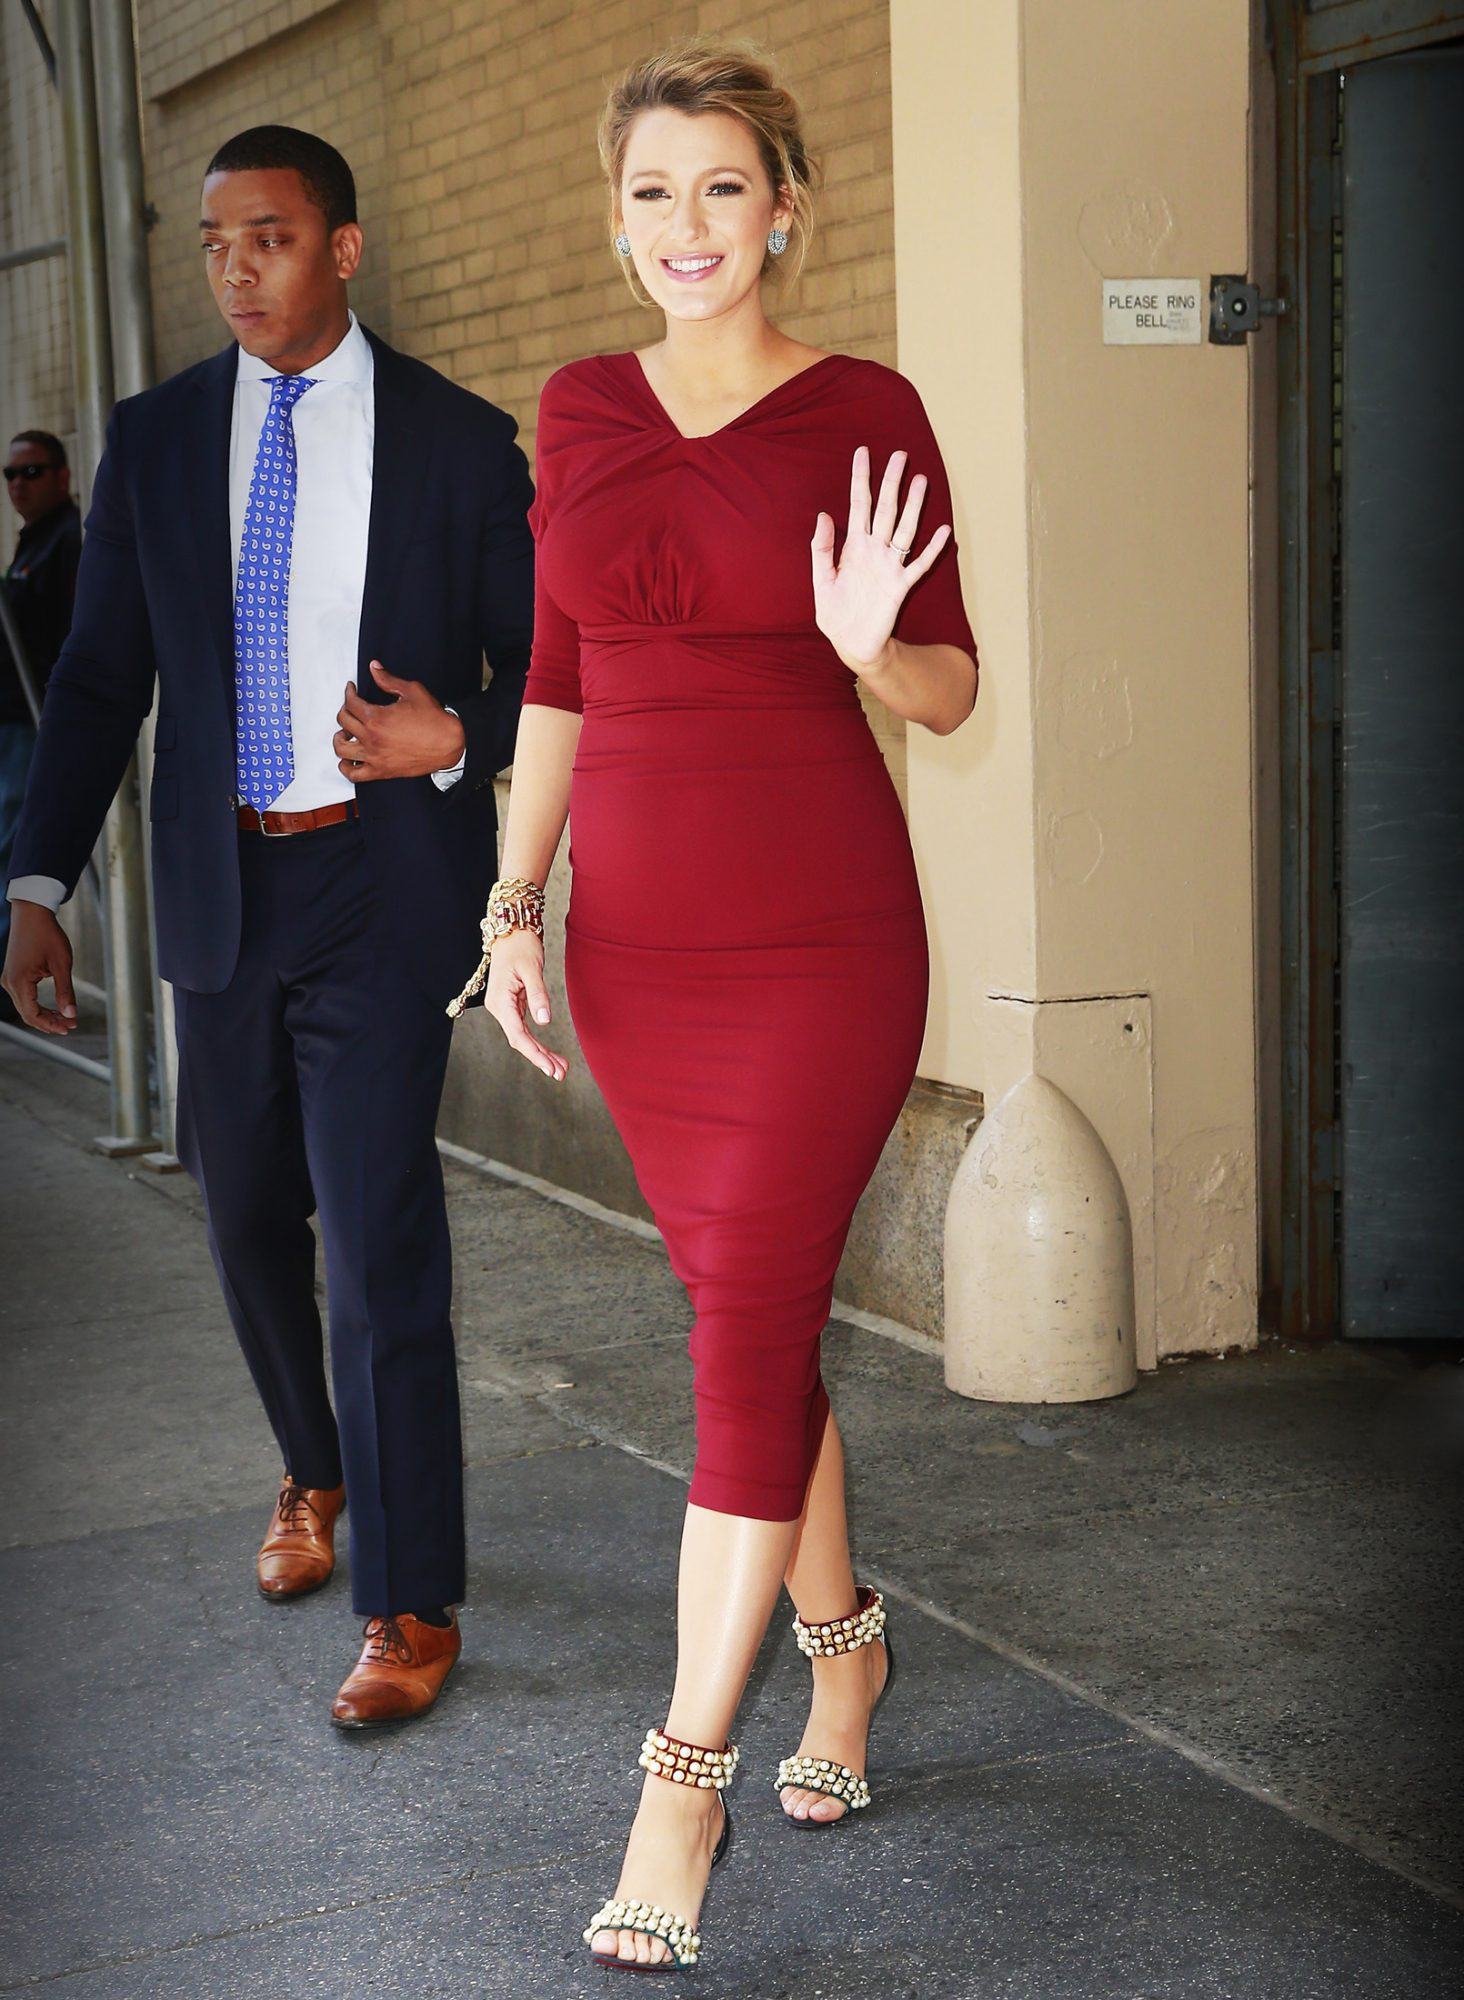 Blake Lively - Maternity Style - June 21, 2016